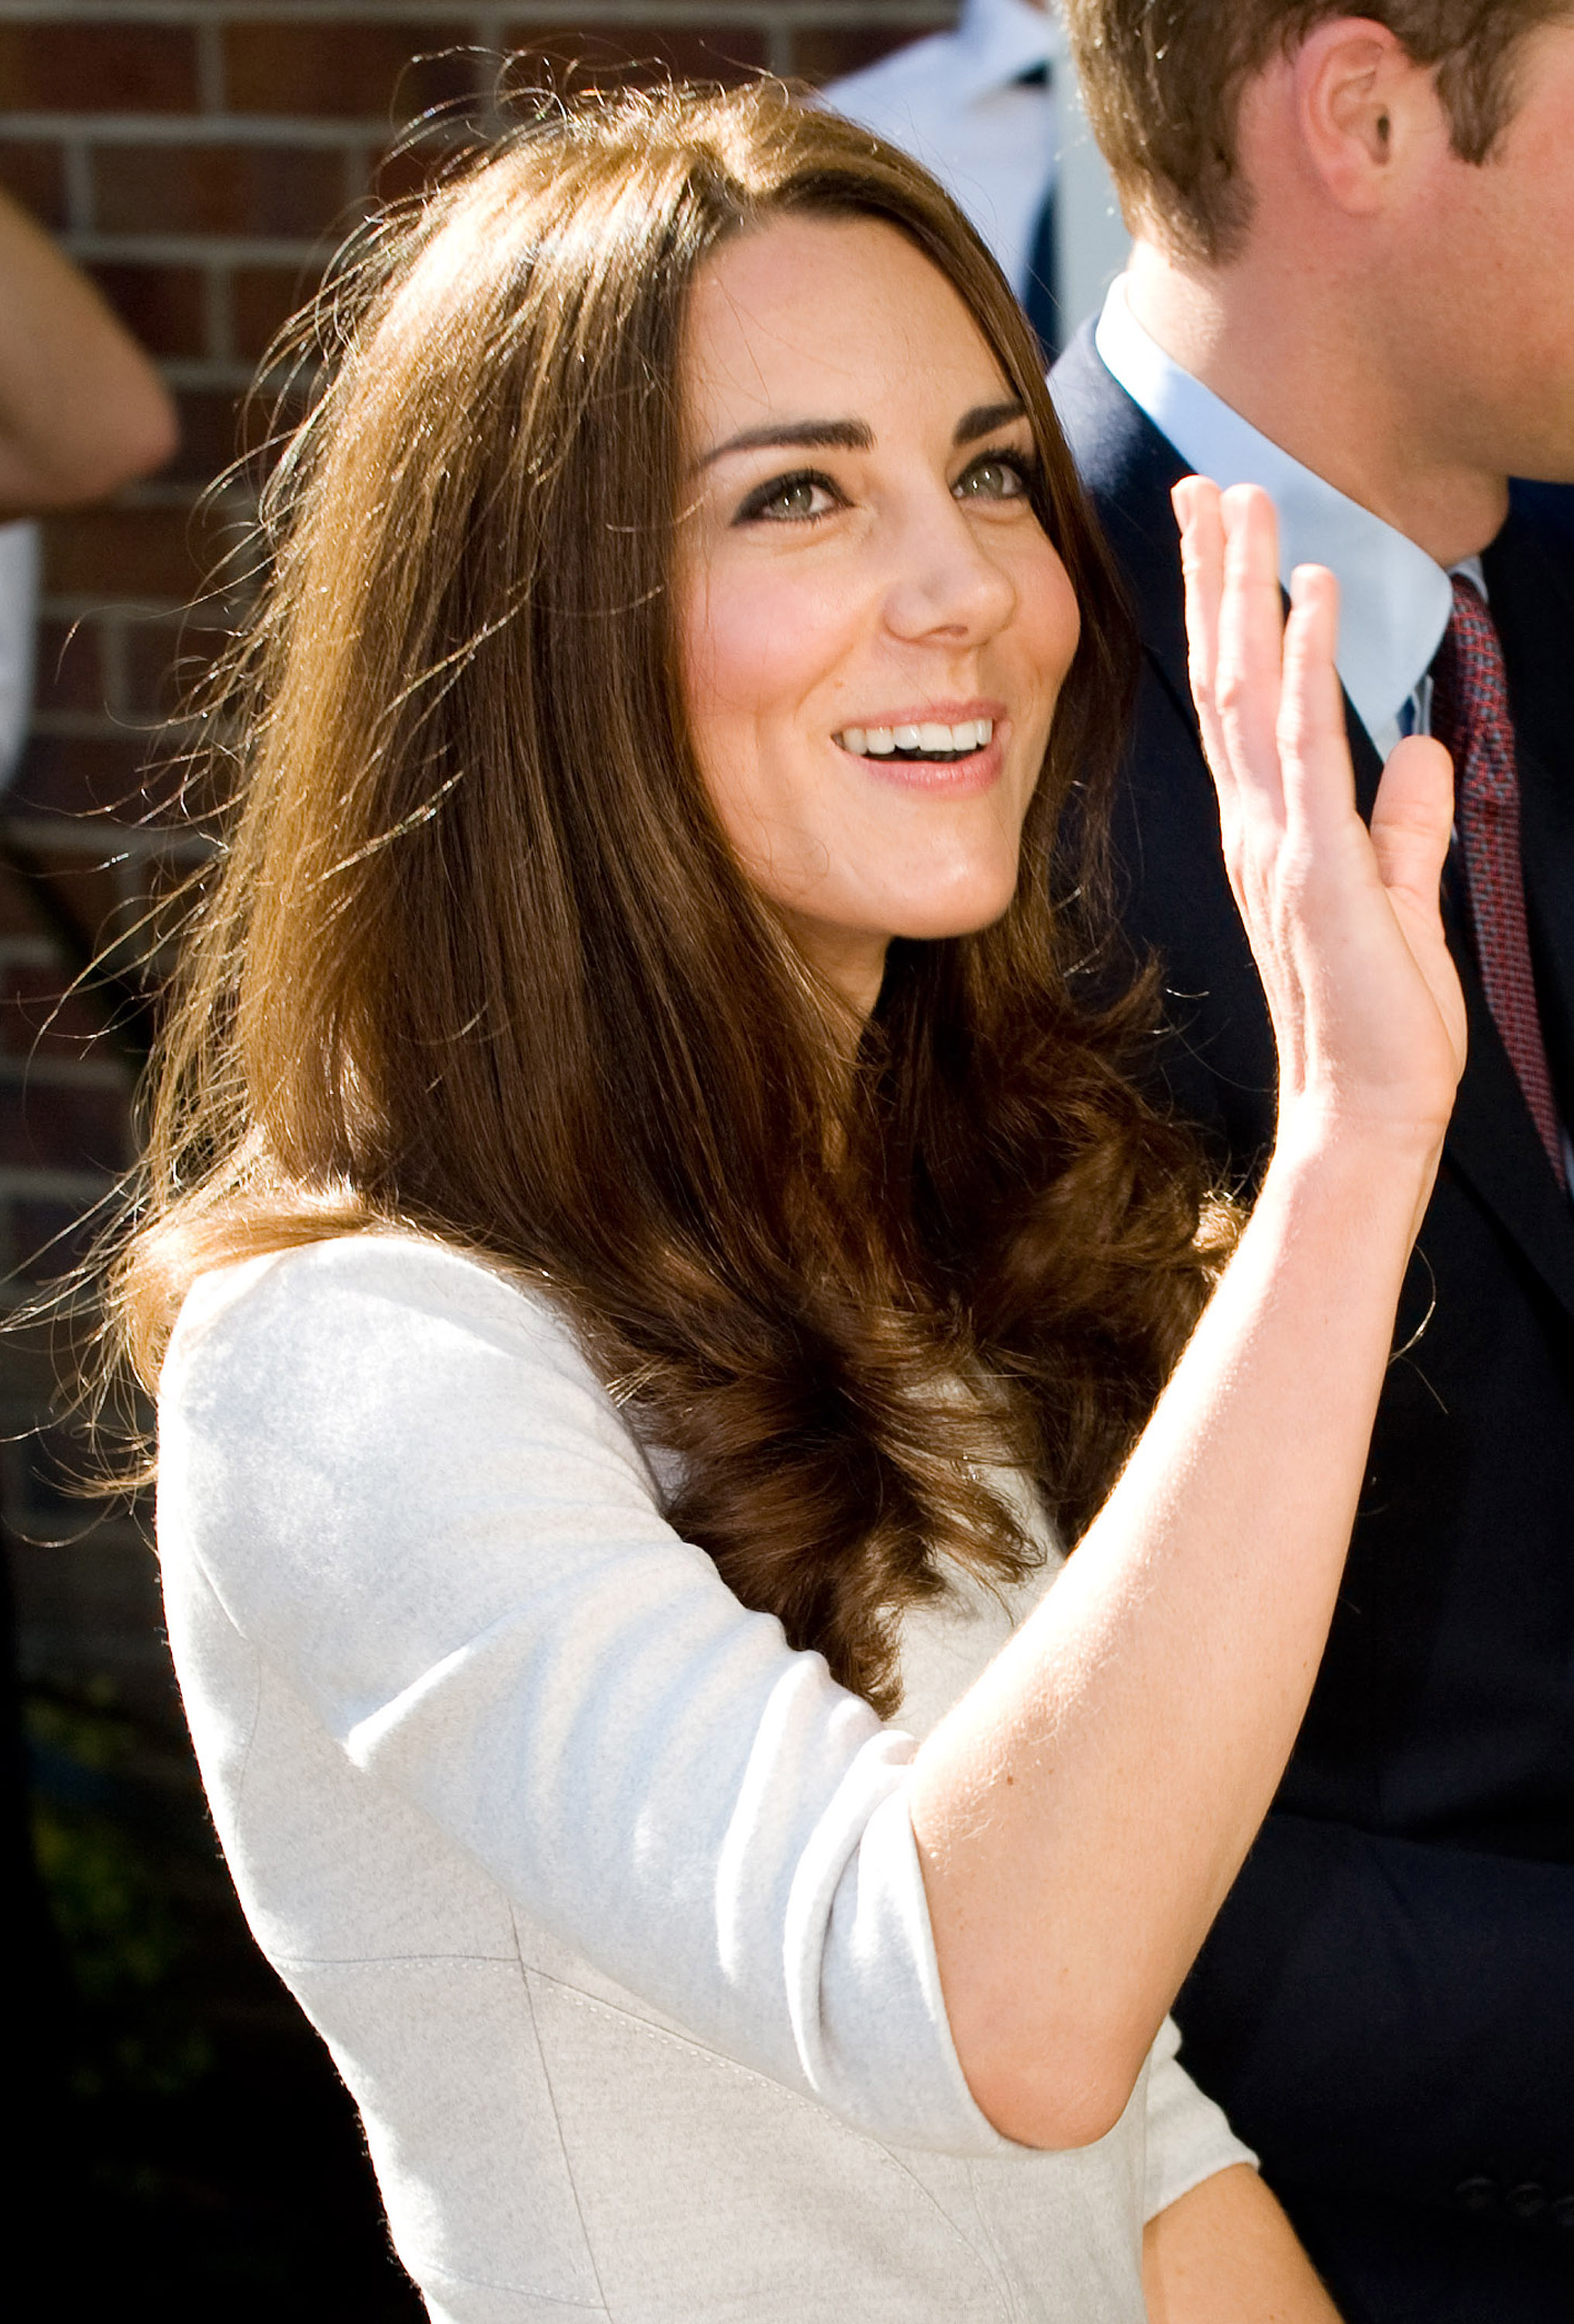 Kate Middleton waved hello.